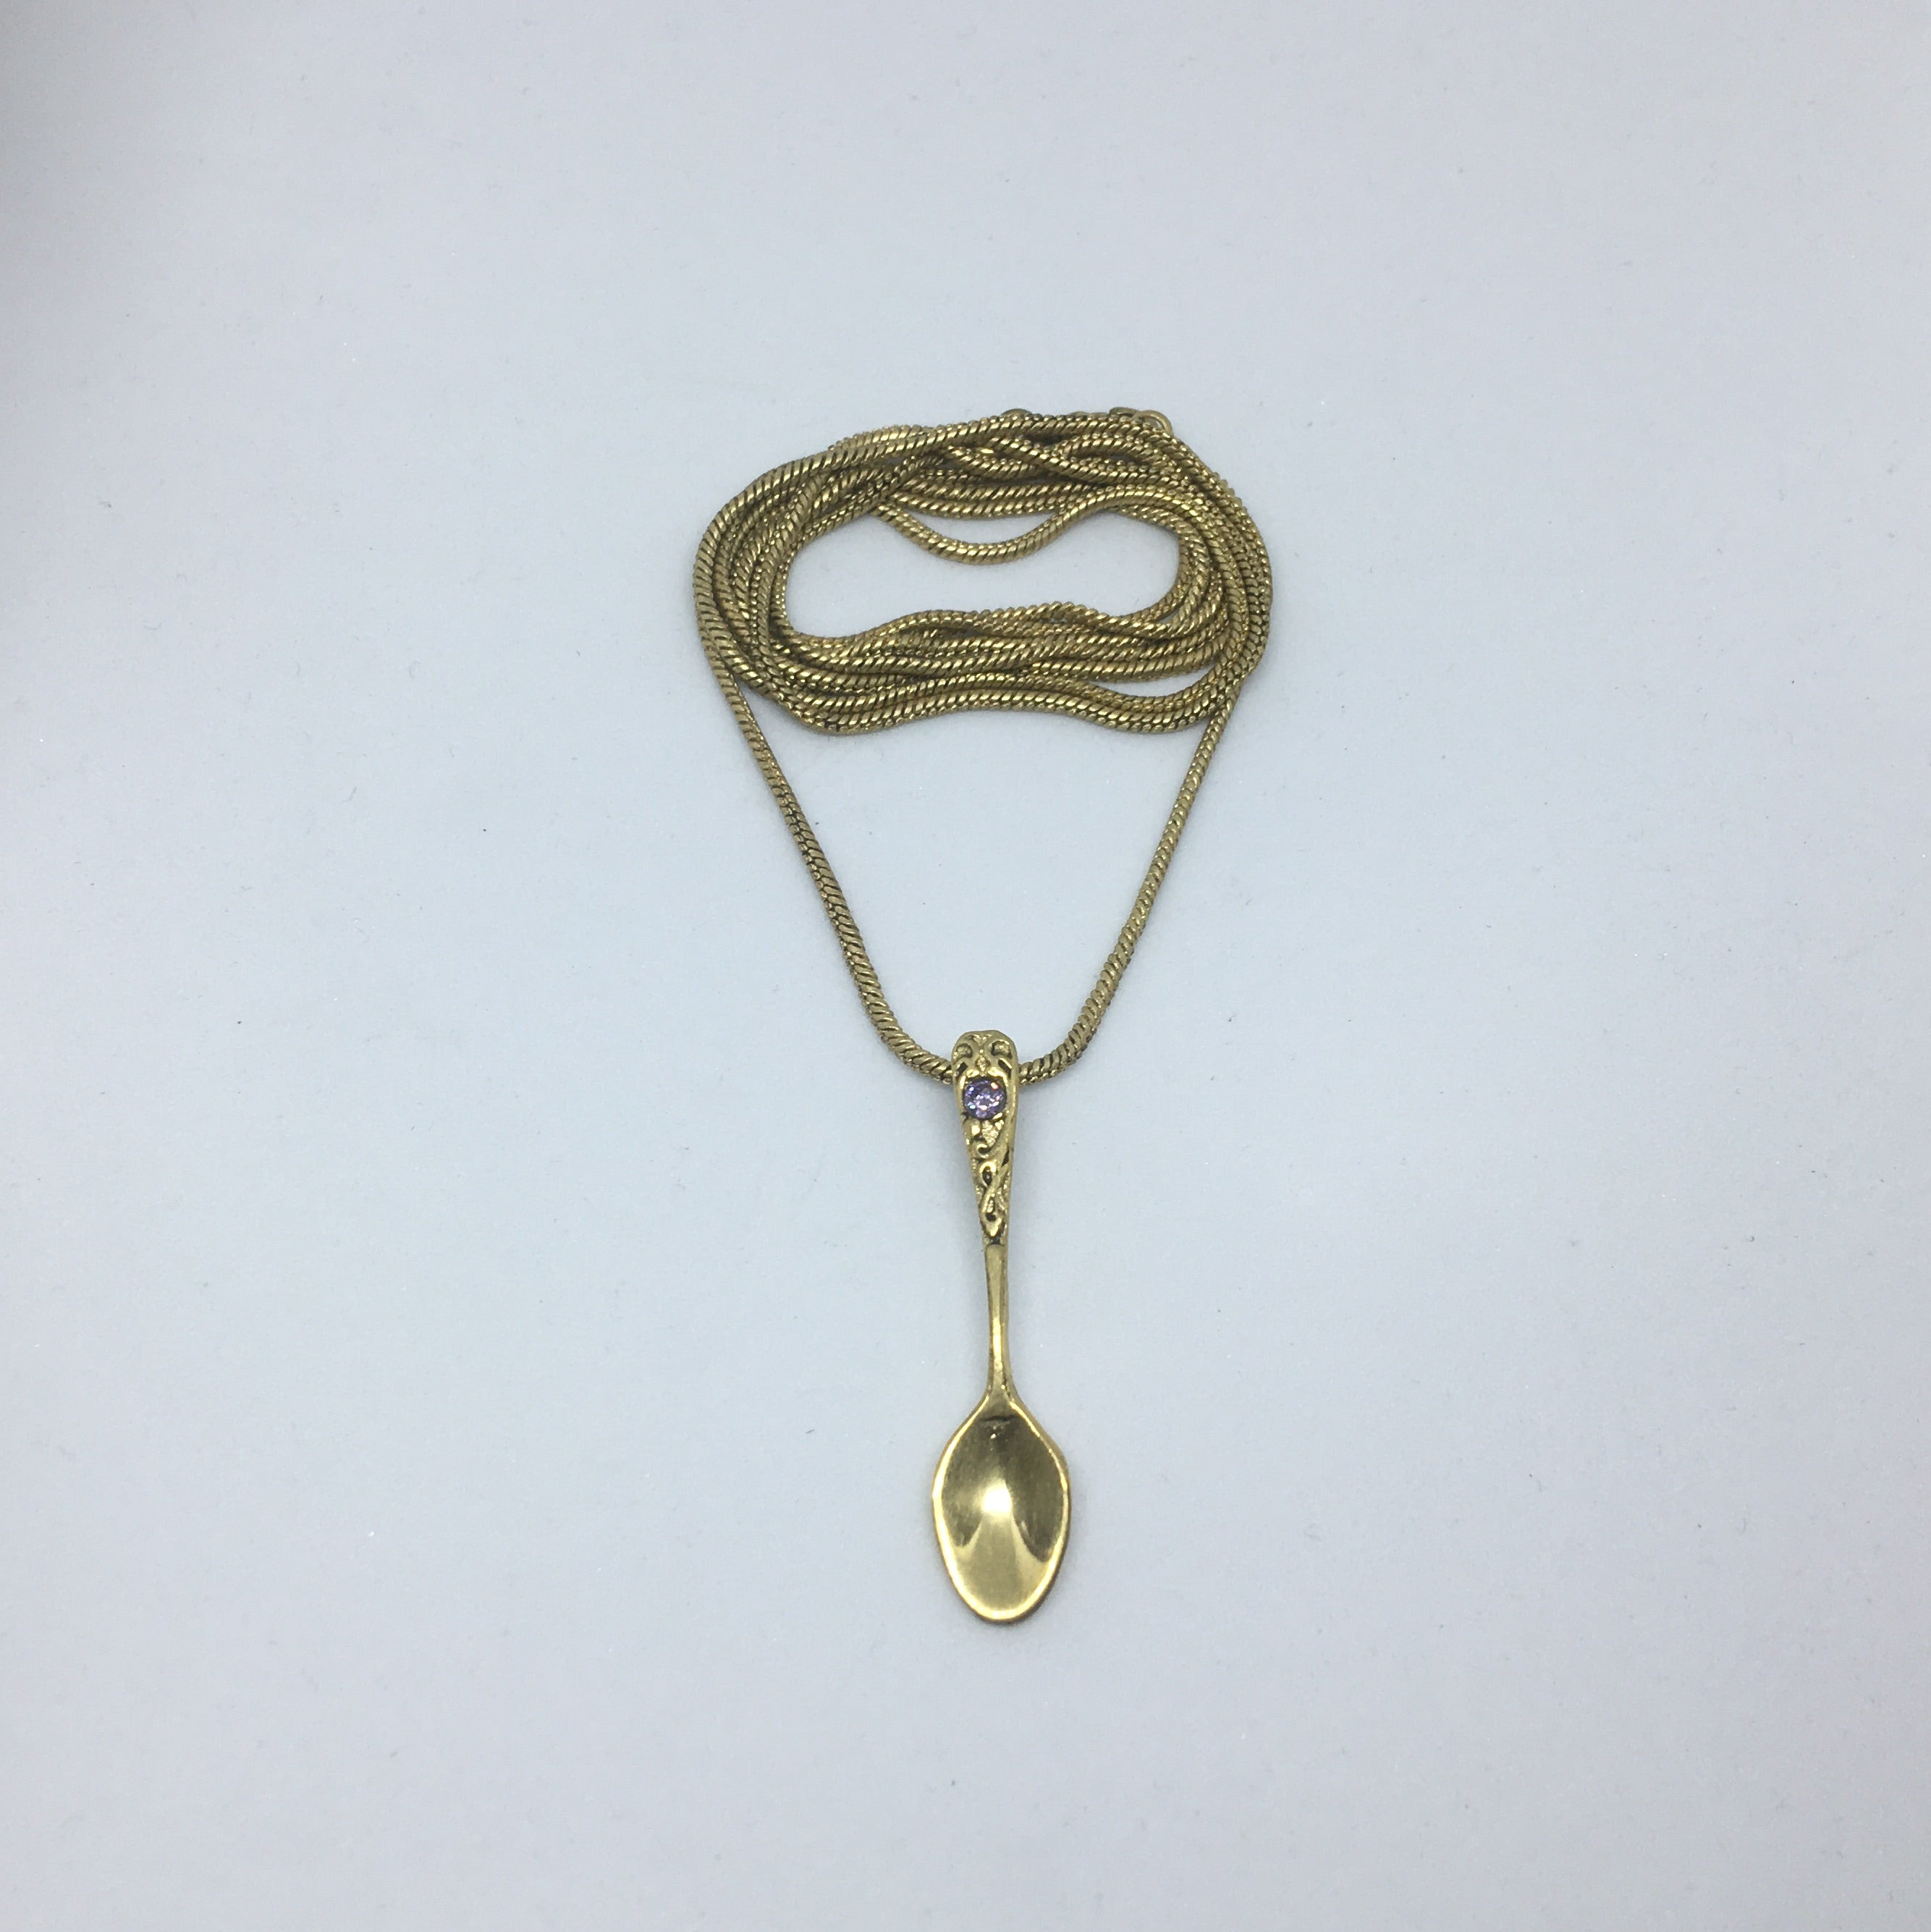 spoon necklace from ministry of style